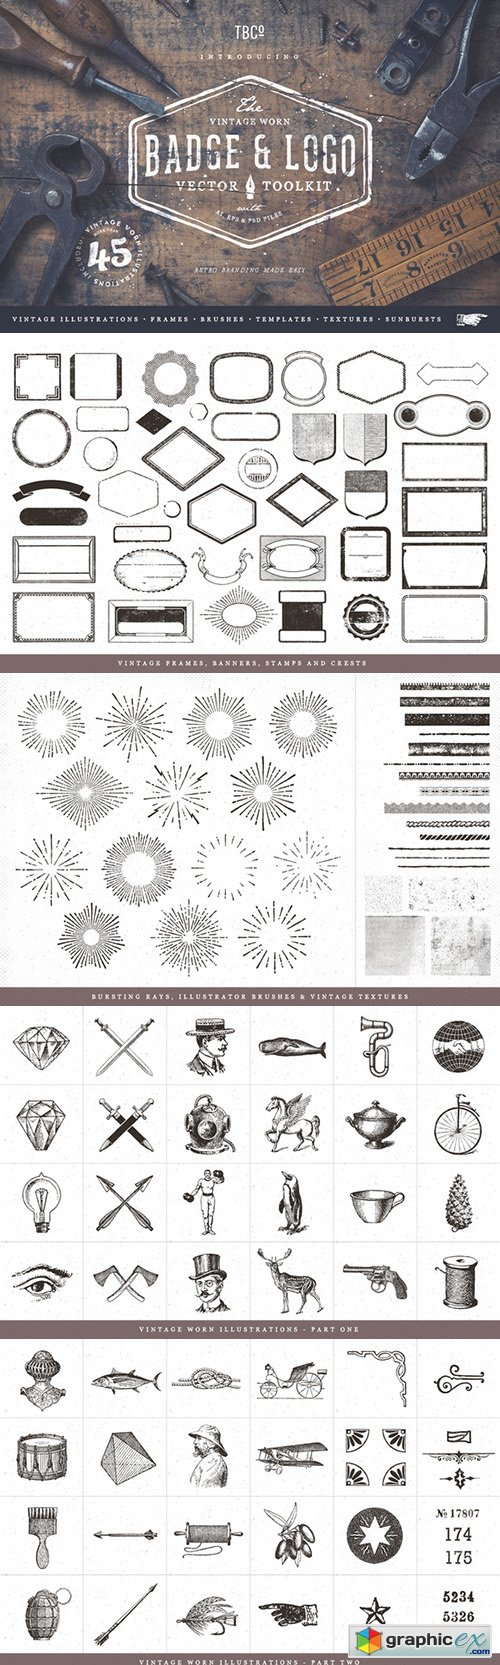 Vintage Badge and Logo Toolkit